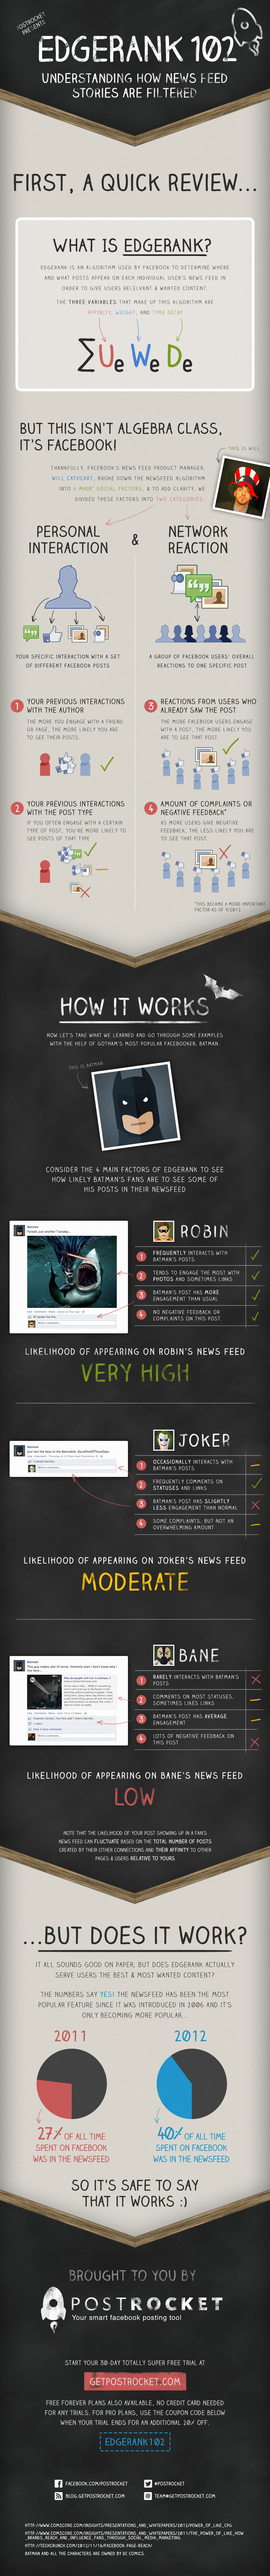 Demystifying How Facebook's EdgeRank Algorithm Works [INFOGRAPHIC]